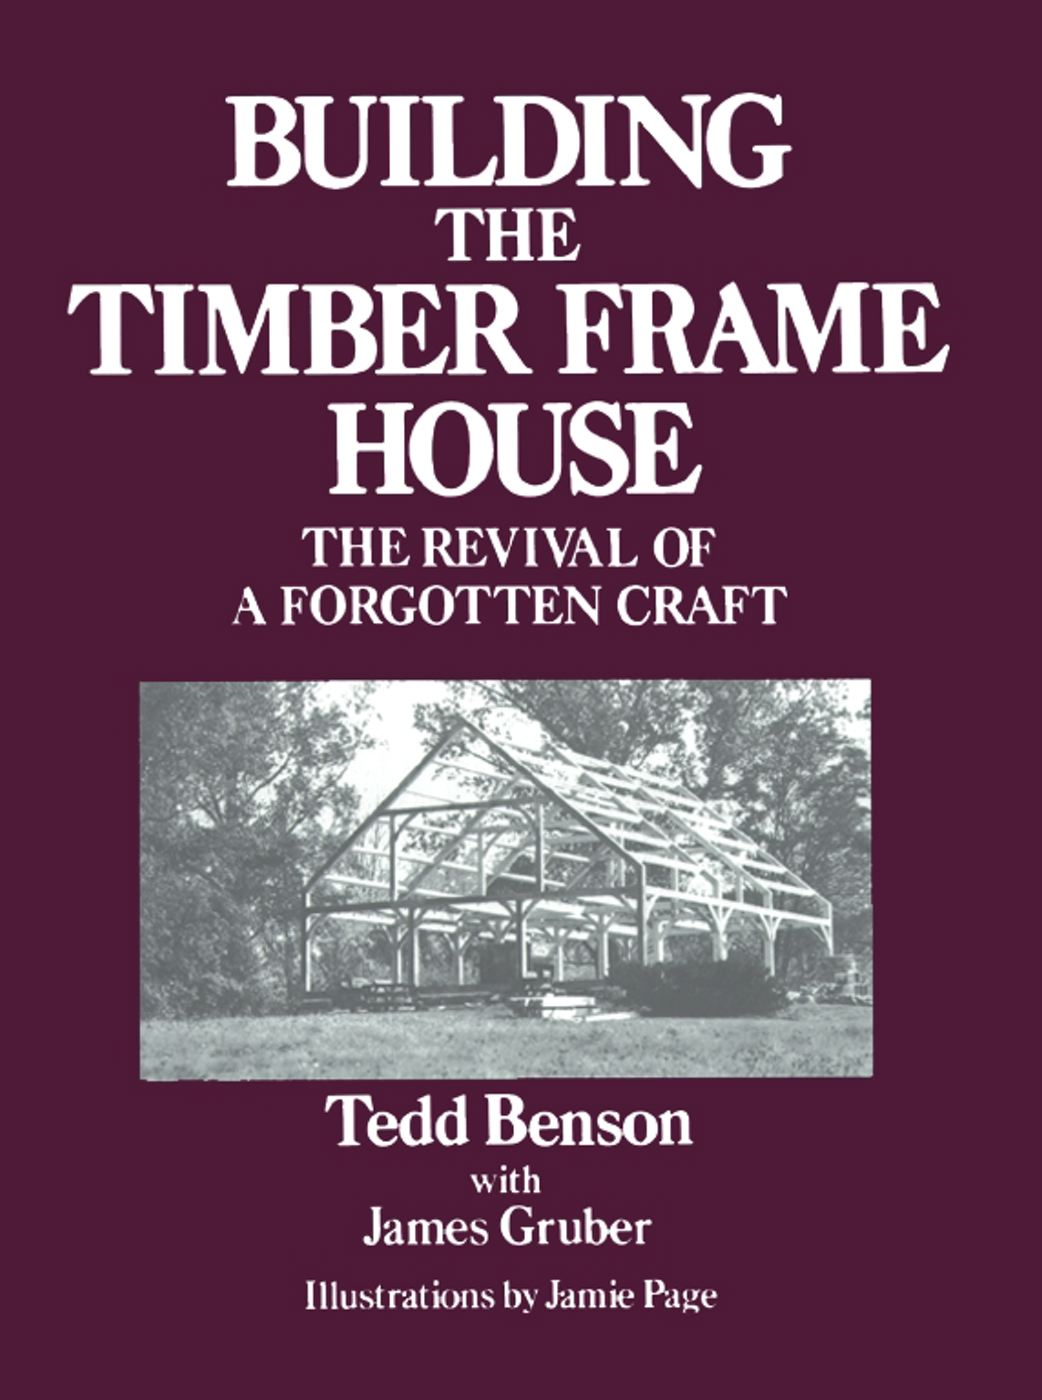 Building the Timber Frame House By: Tedd Benson,Jamie Page